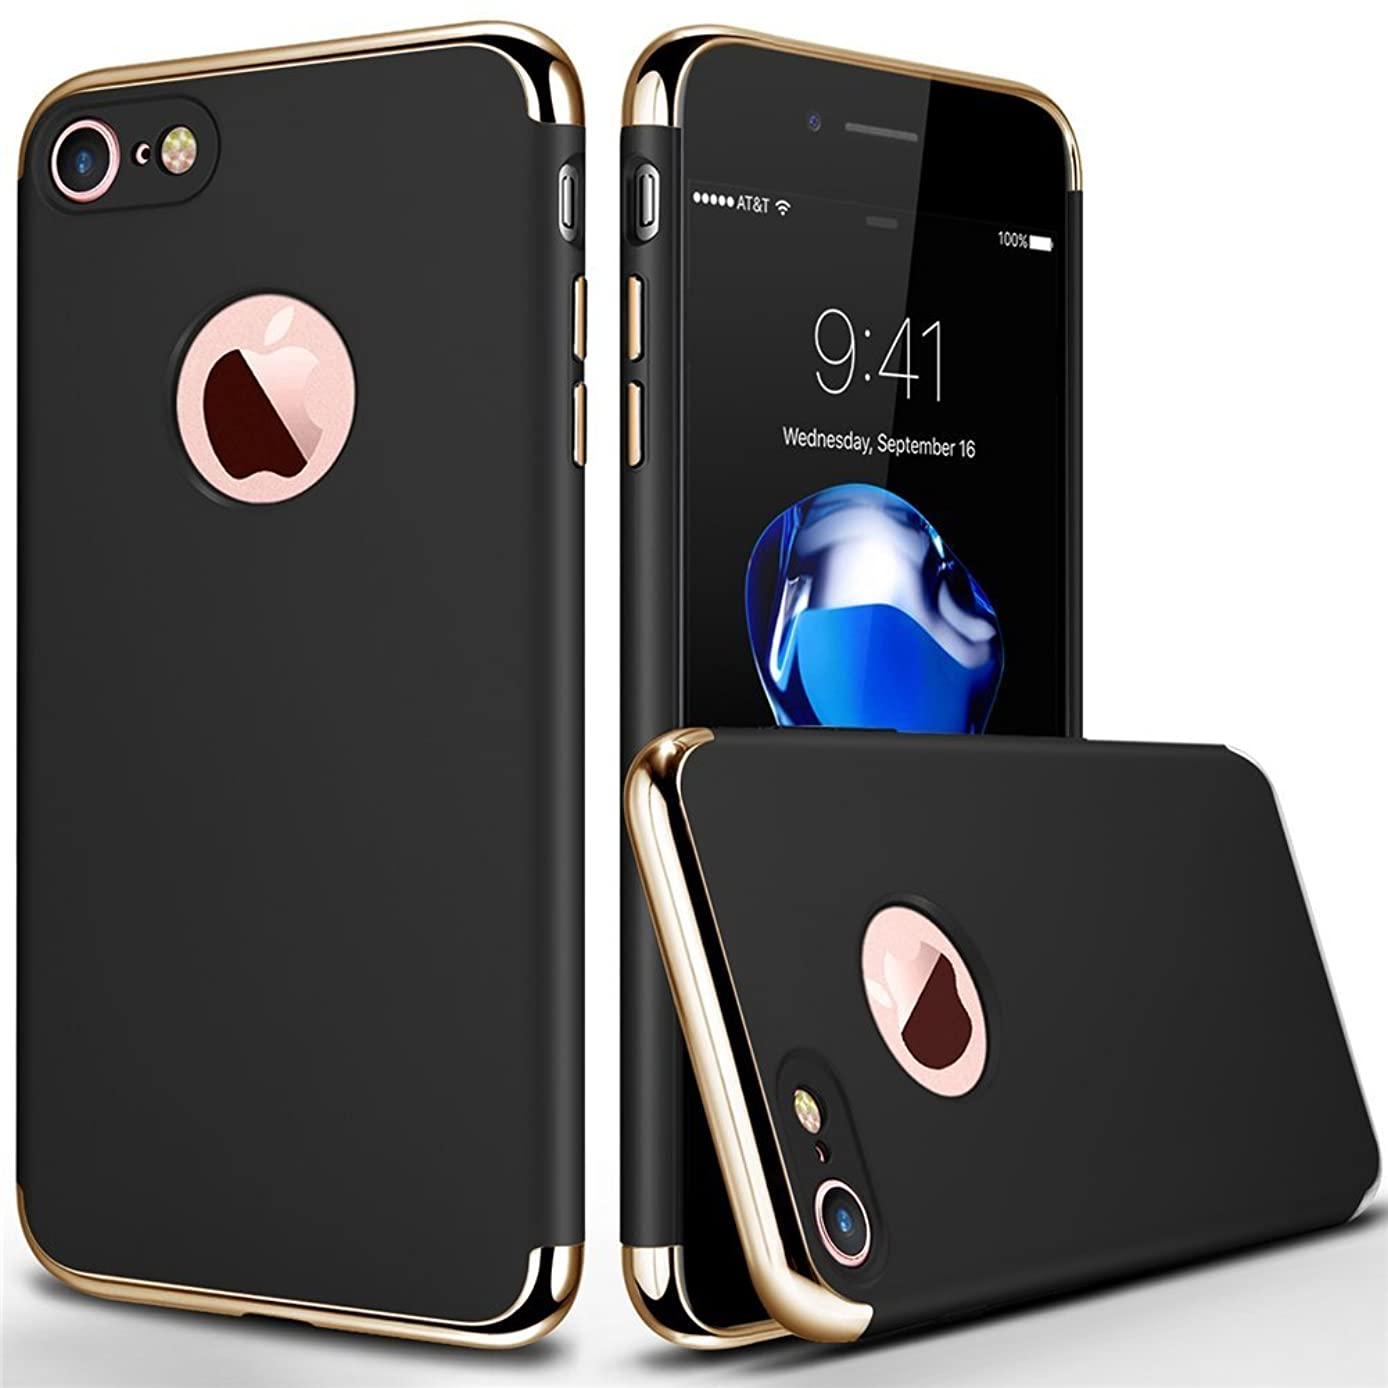 iPhone 7 Case, COOLQO Ultra-Thin 3in1 Plastic Electroplated Hard Frame with Tempered Glass Screen Protector Slim fit Shockproof PC Cover Skin & Case for iPhone 7 4.7 Inch (Black)